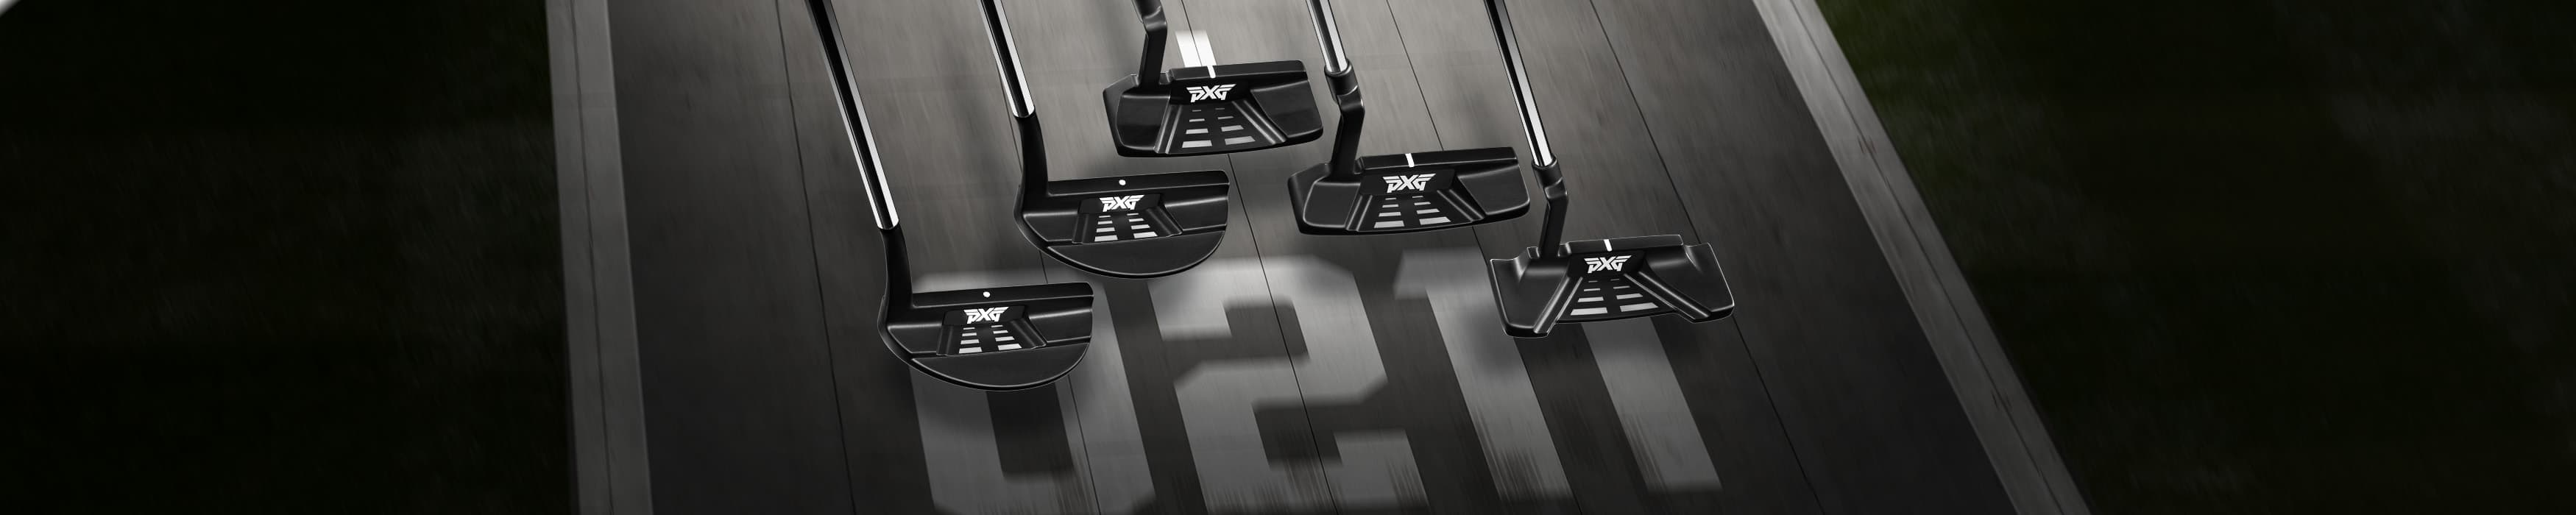 PXG 0211 Putters